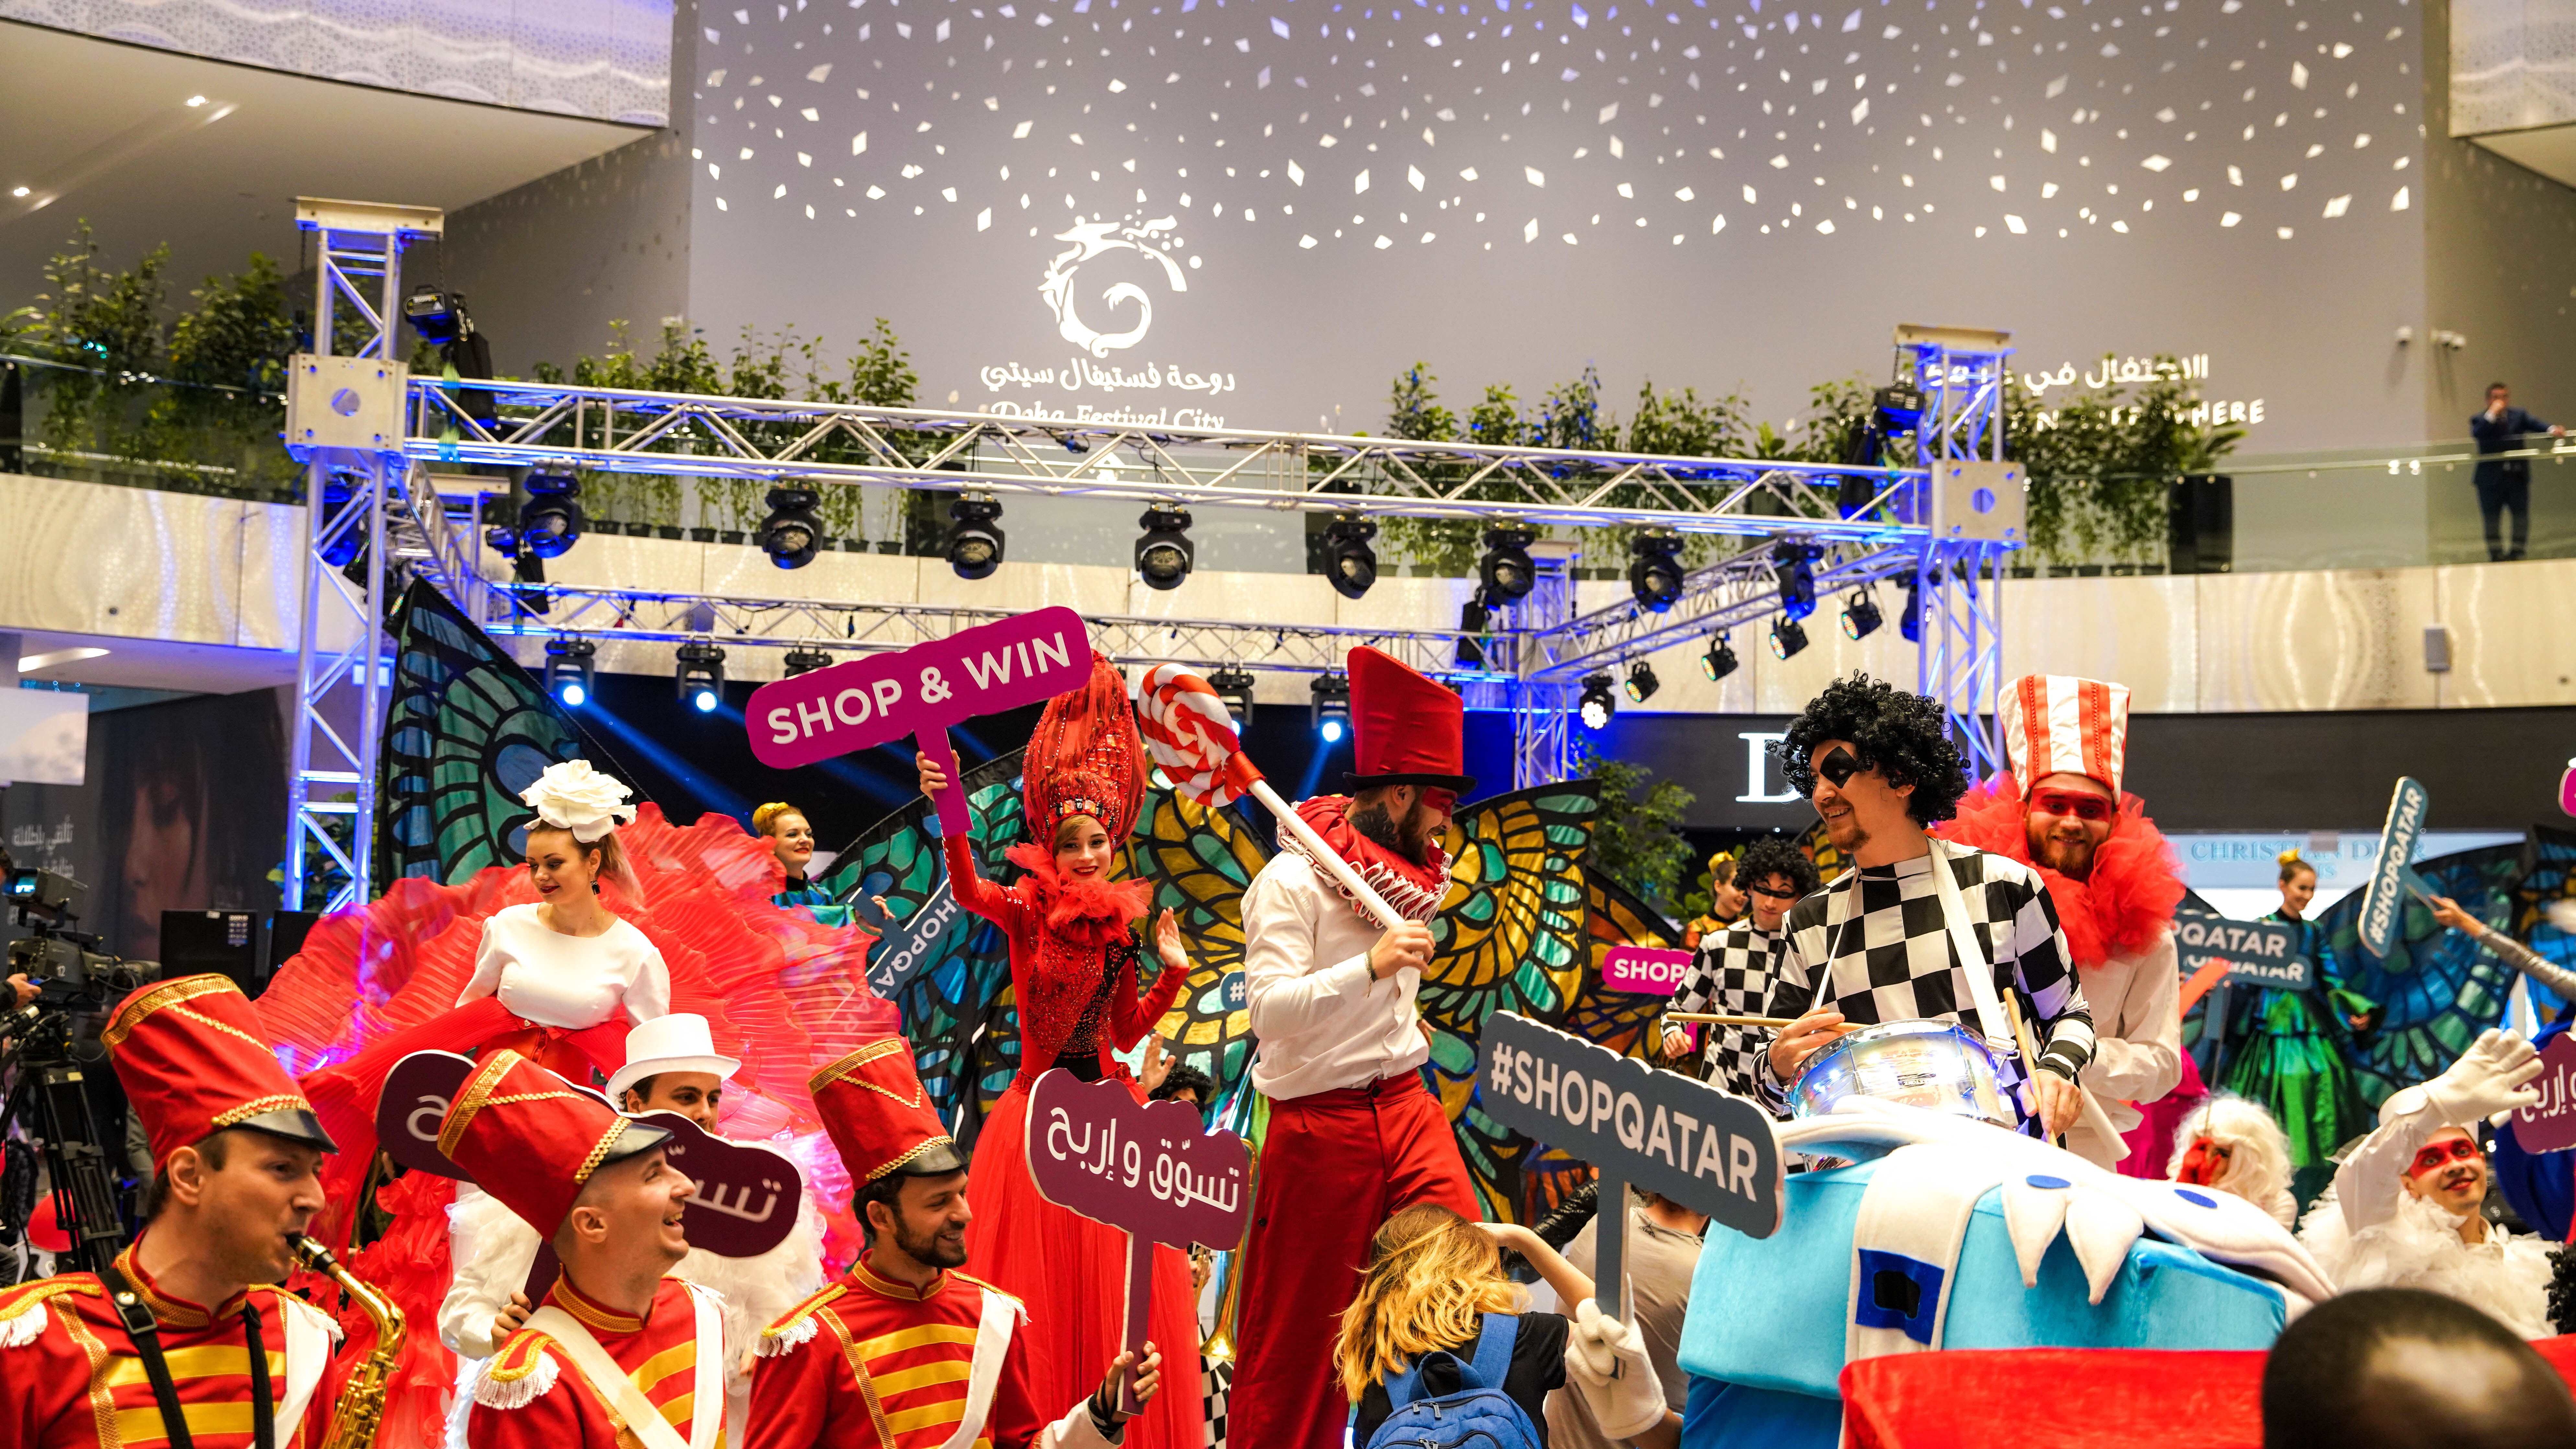 Shop Qatar to start off the new year with discounts, prizes, fashion, and entertainment